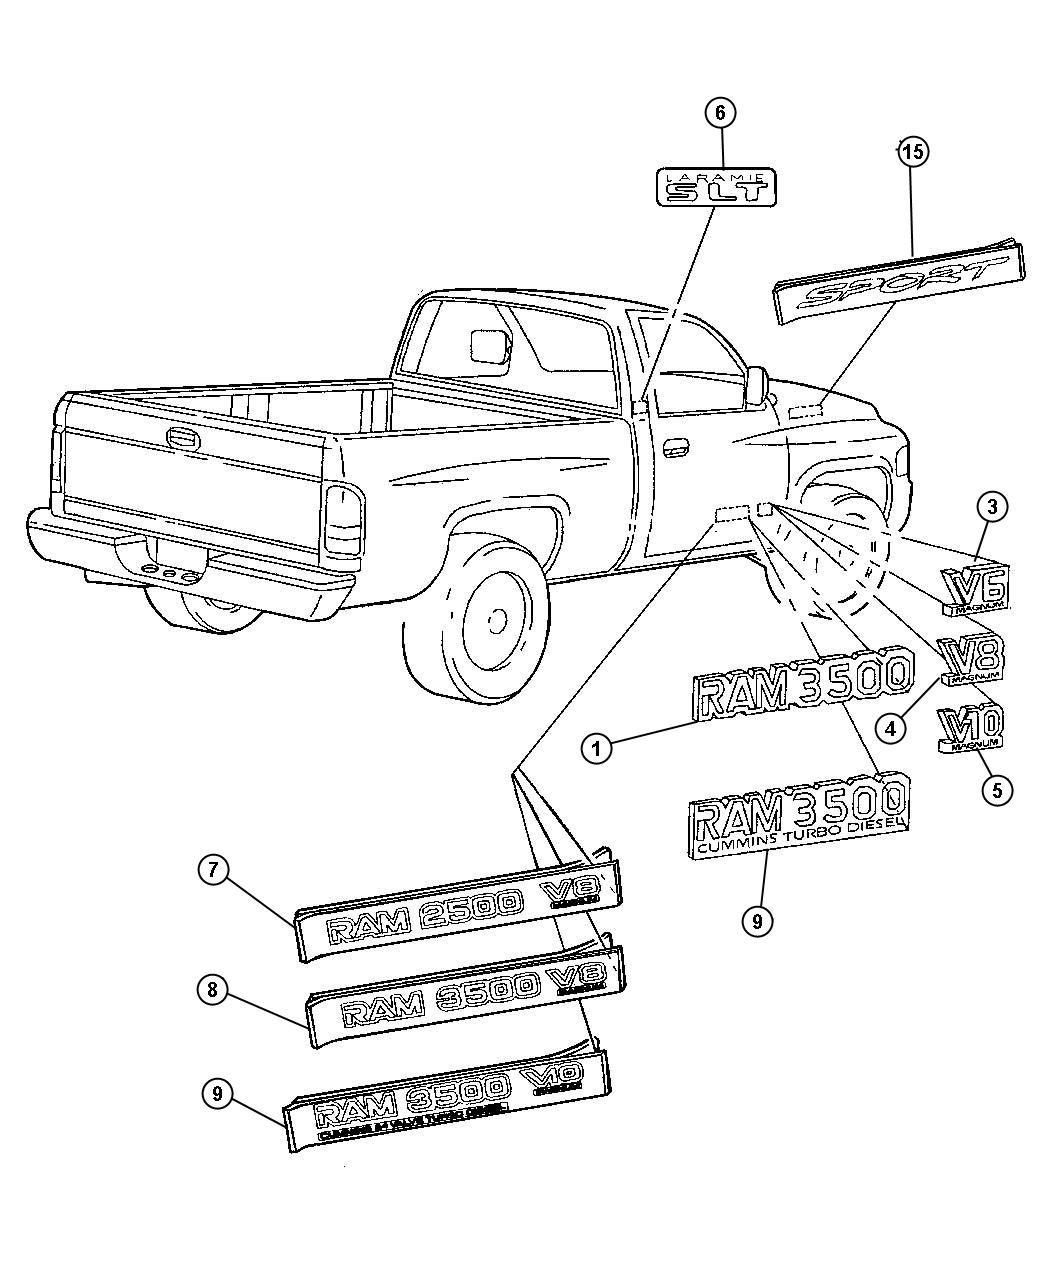 parts for dodge ram 1500 daytona